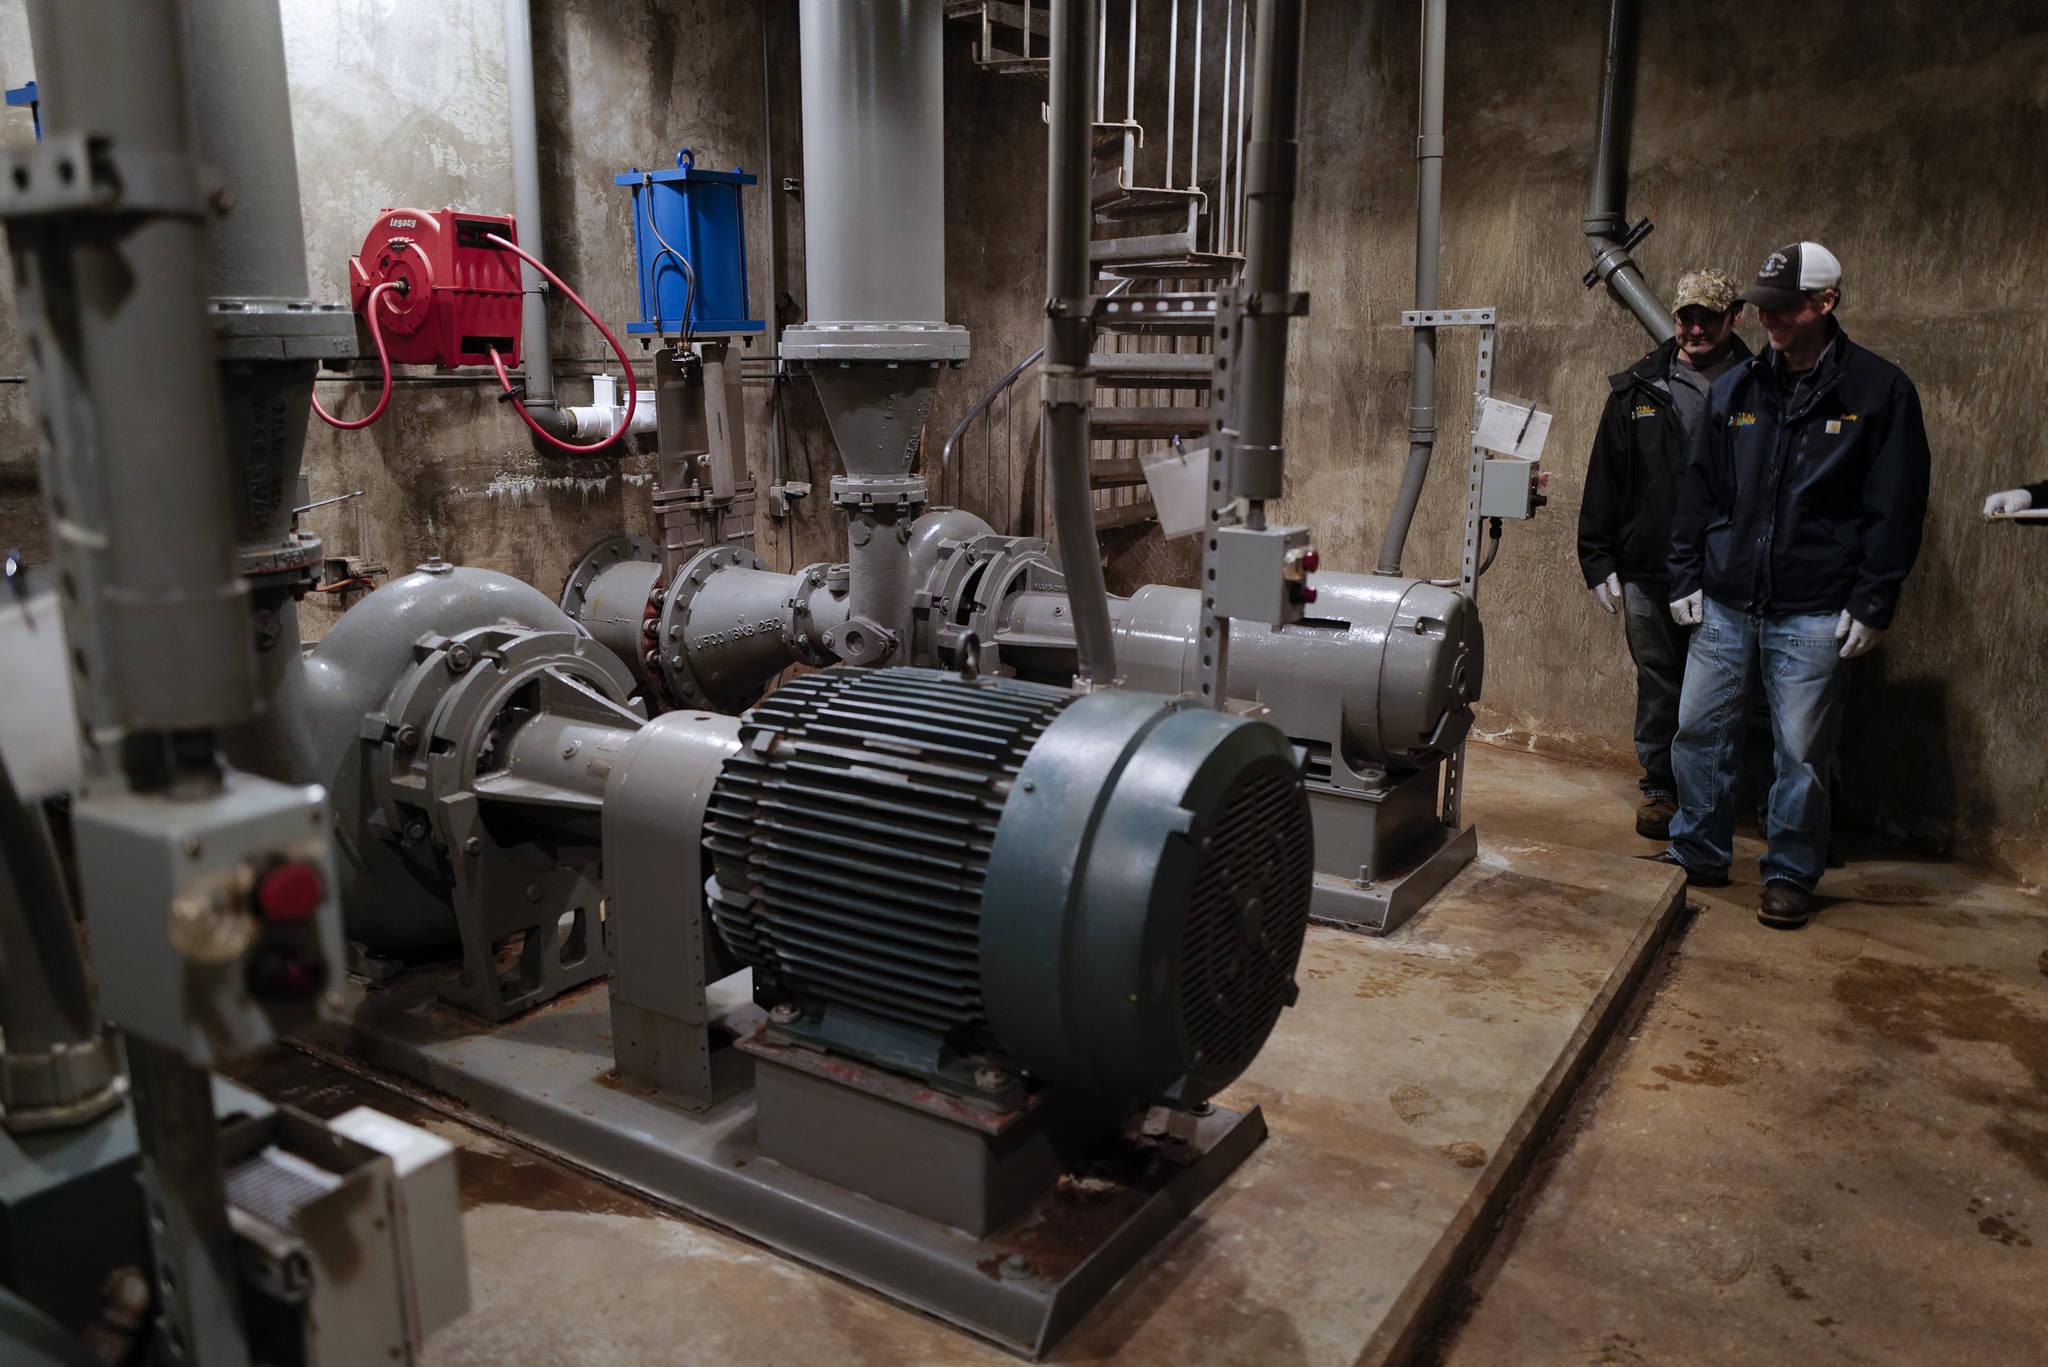 Otto Dunayski, left, and Scott Simonson, senior wastewater collection officers for the city, inspect three pumps three-story underground at the Outer Drive Pumping Station downtown on Friday, Oct. 11, 2019. The pumps were overwhelmed during last weekend's storm that caused a backup of sewage into the Mayor Bill Overstreet Park utilities building. (Michael Penn | Juneau Empire)